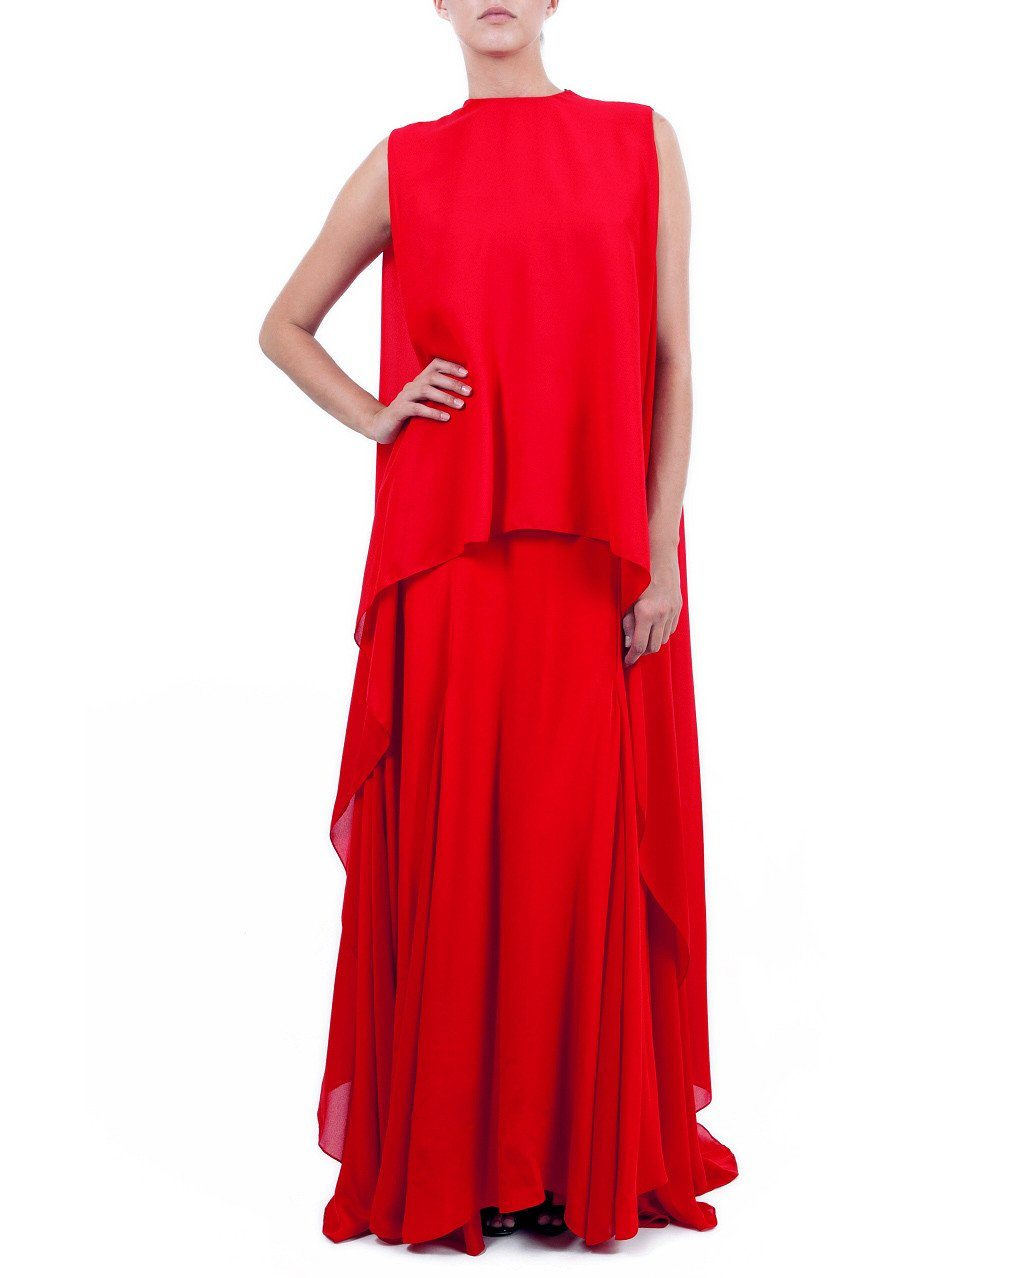 Draped Layered Gown - Zardoze - Covetella Dress Rentals